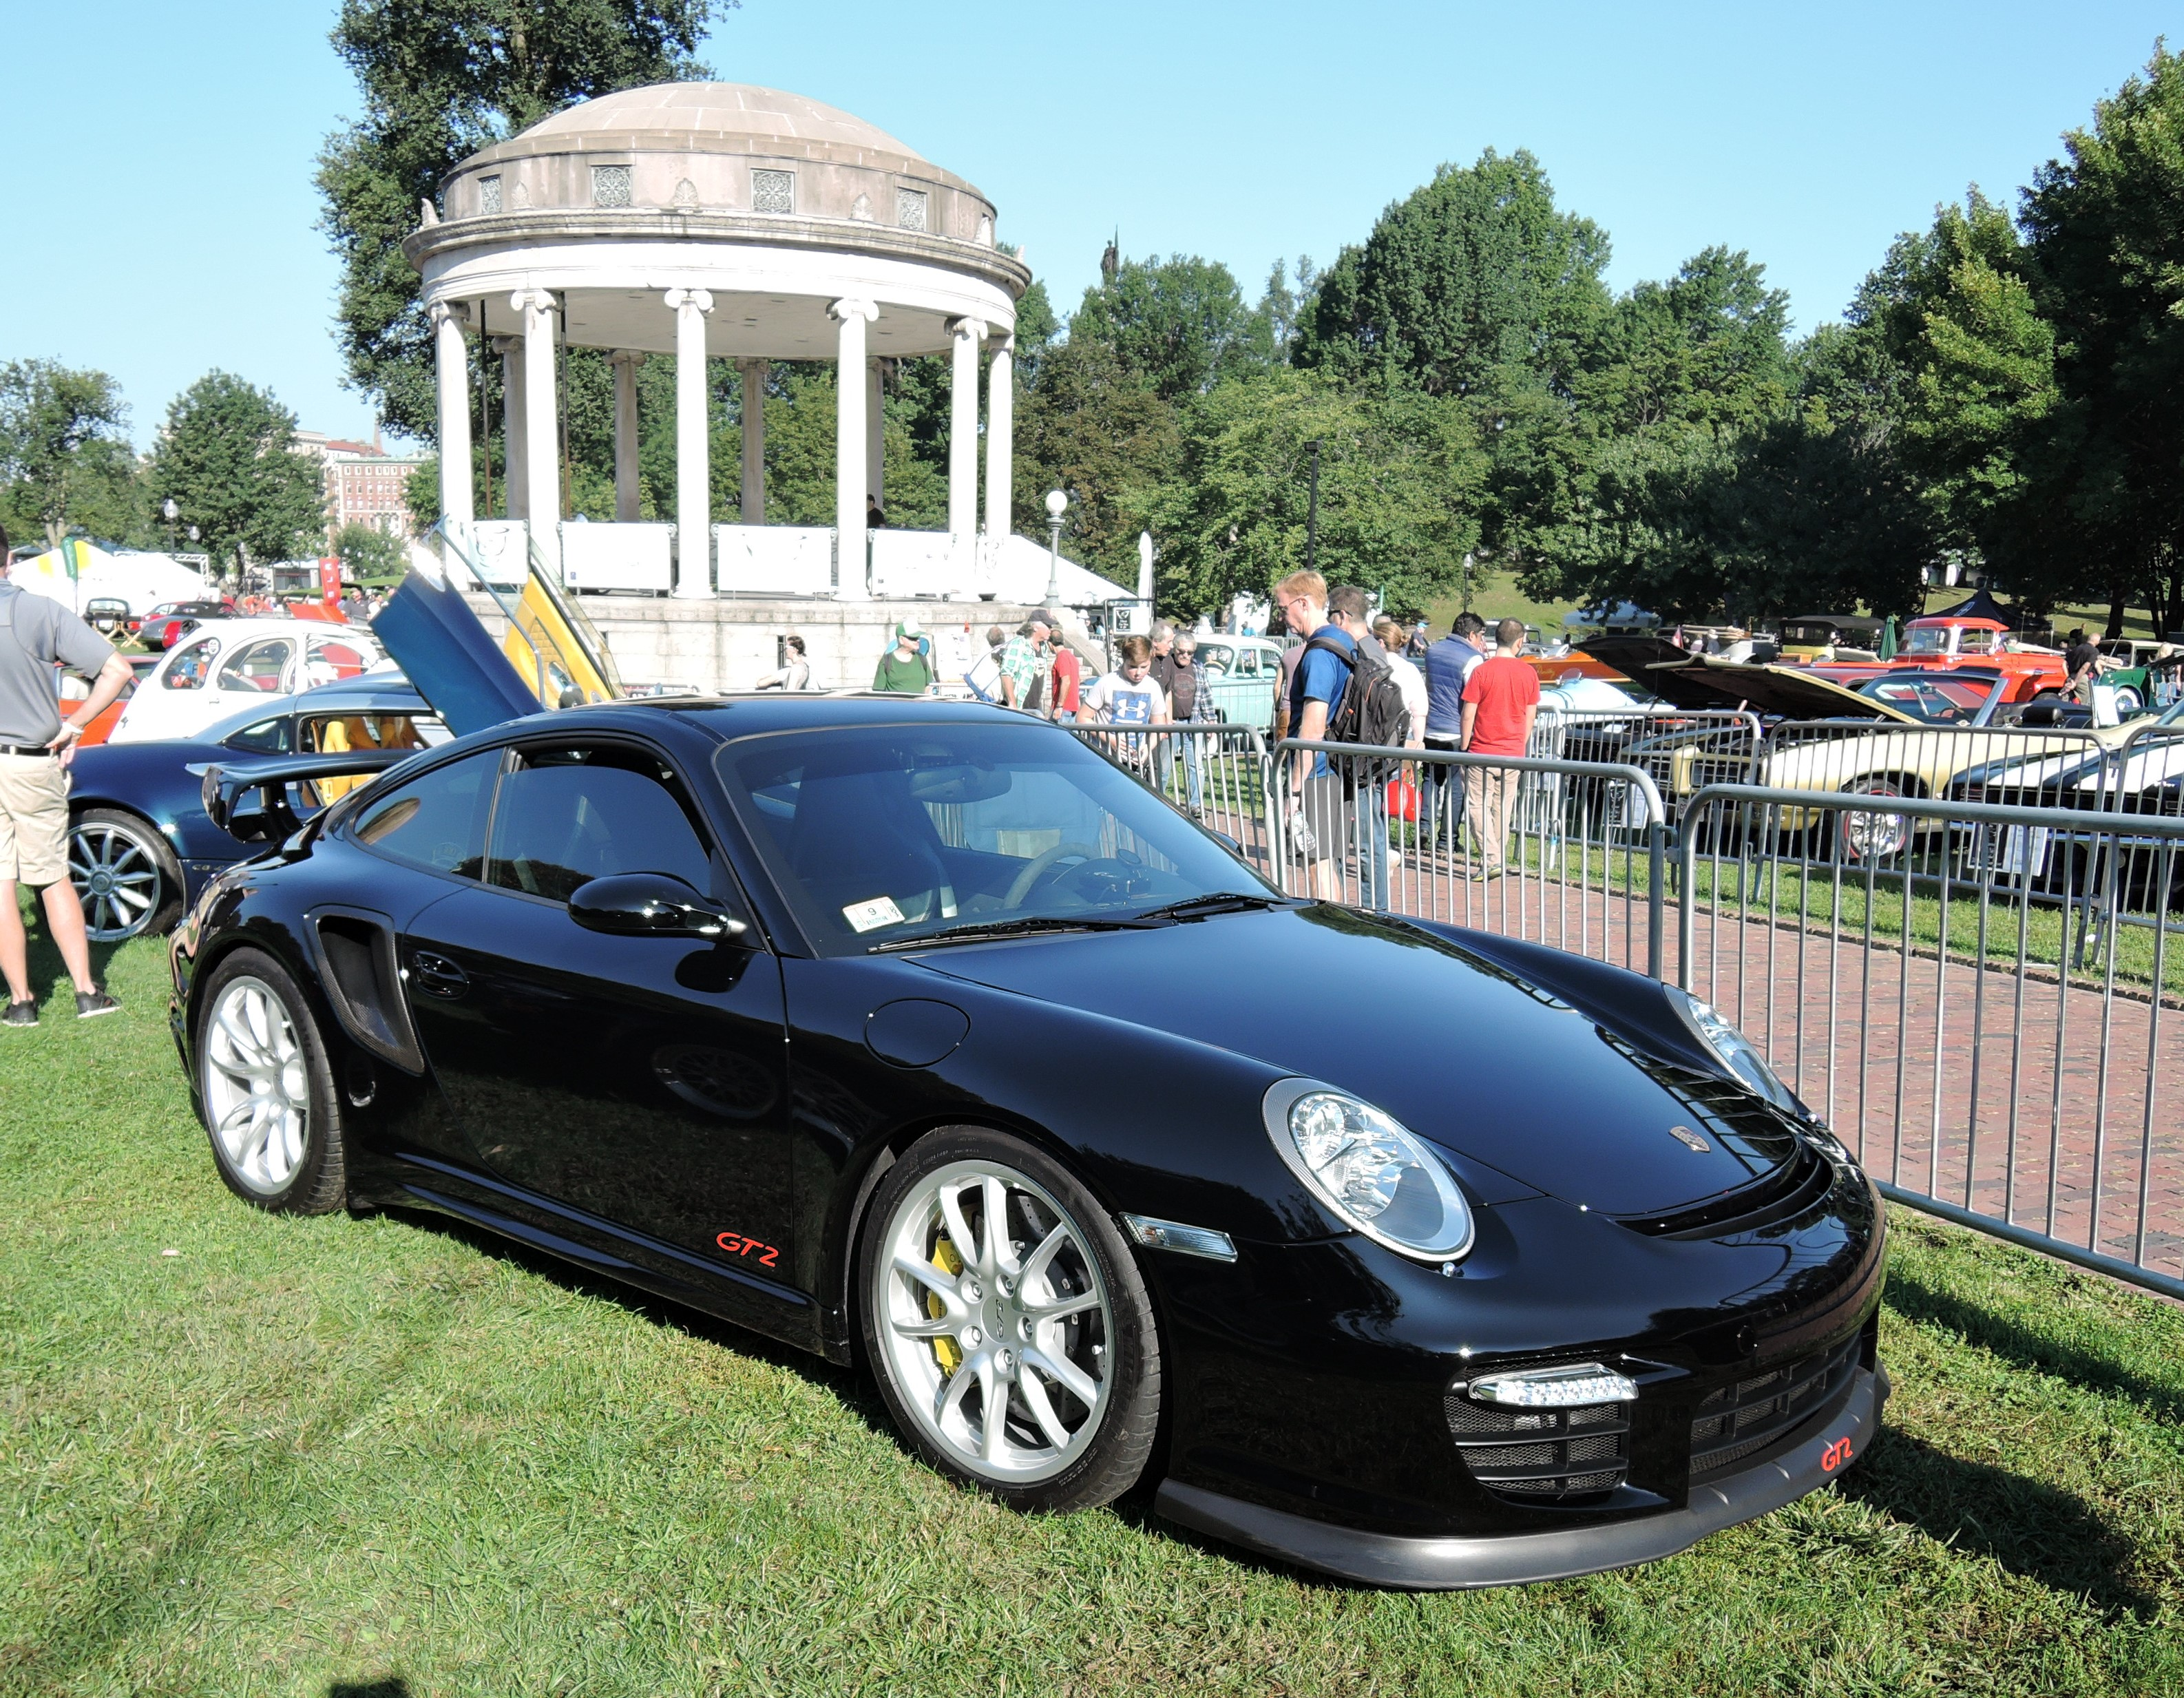 black Porsche 911 GT2 - The Boston Cup 2017